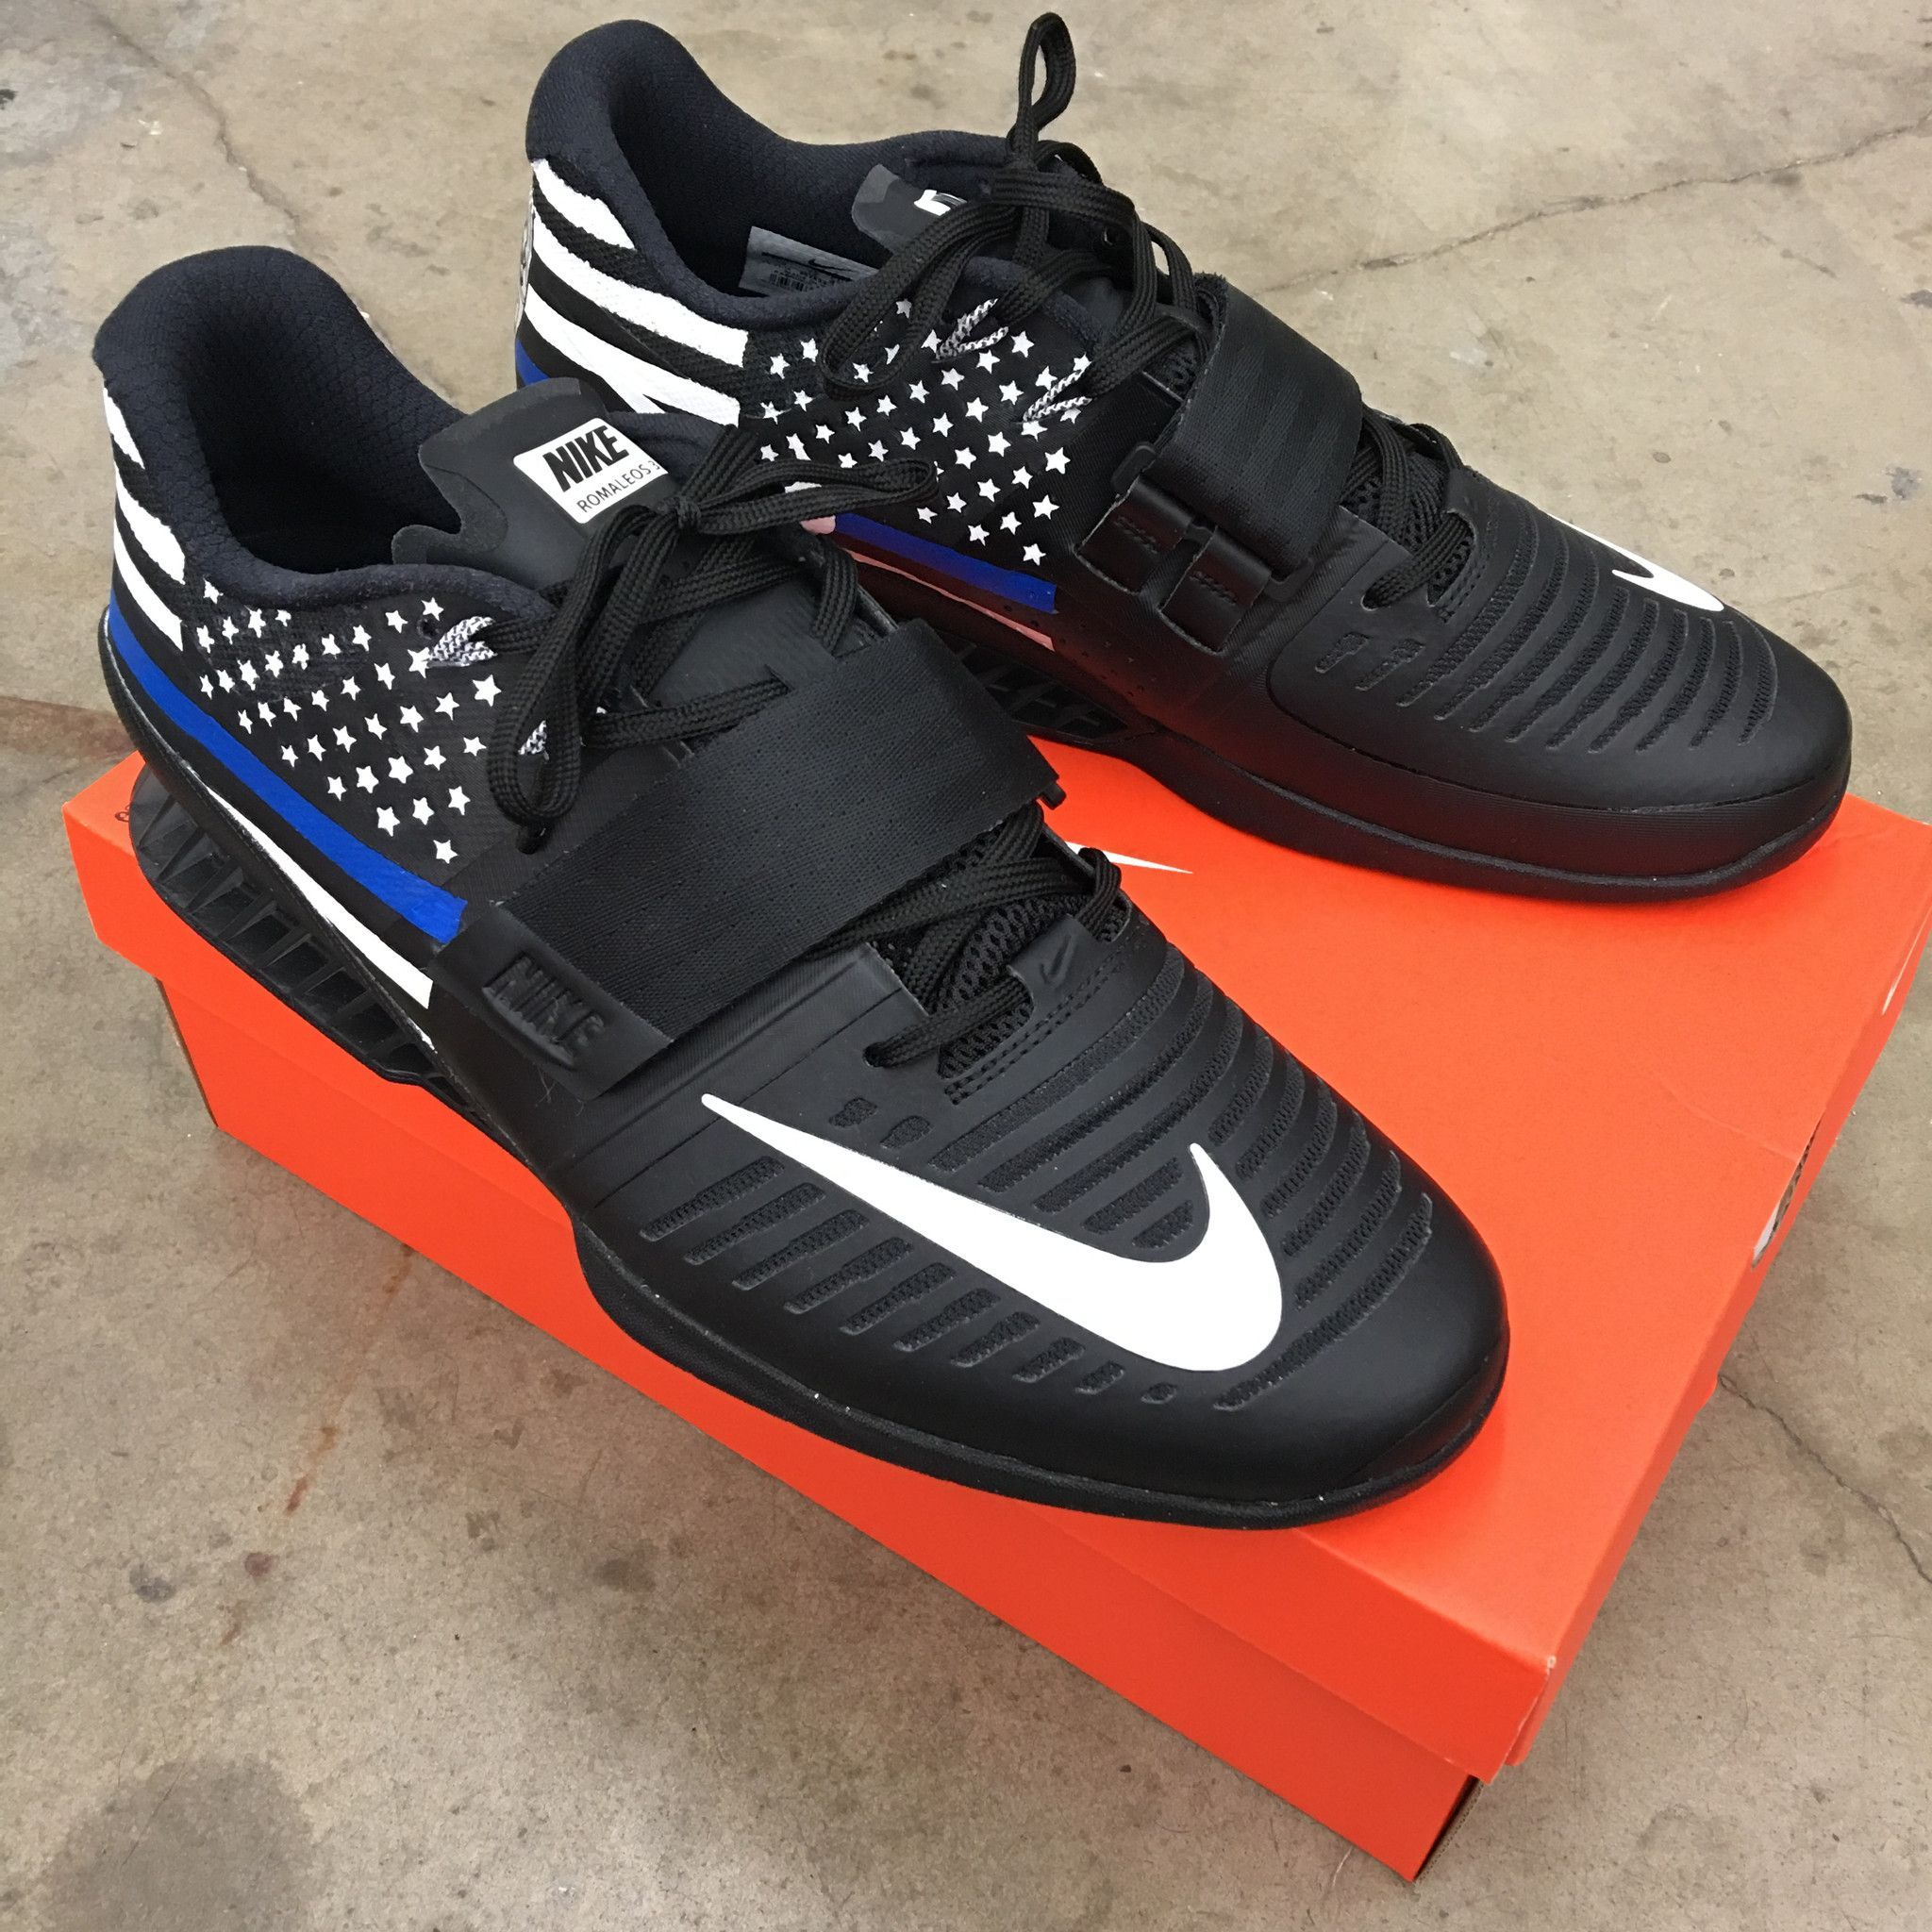 gastos generales puntada arco  These black Nike Romaleos have the American Flag on them with the Blue Line  representing Law Enforcement.Paint is 100% permanent and … | Black nikes,  Sneakers, Nike